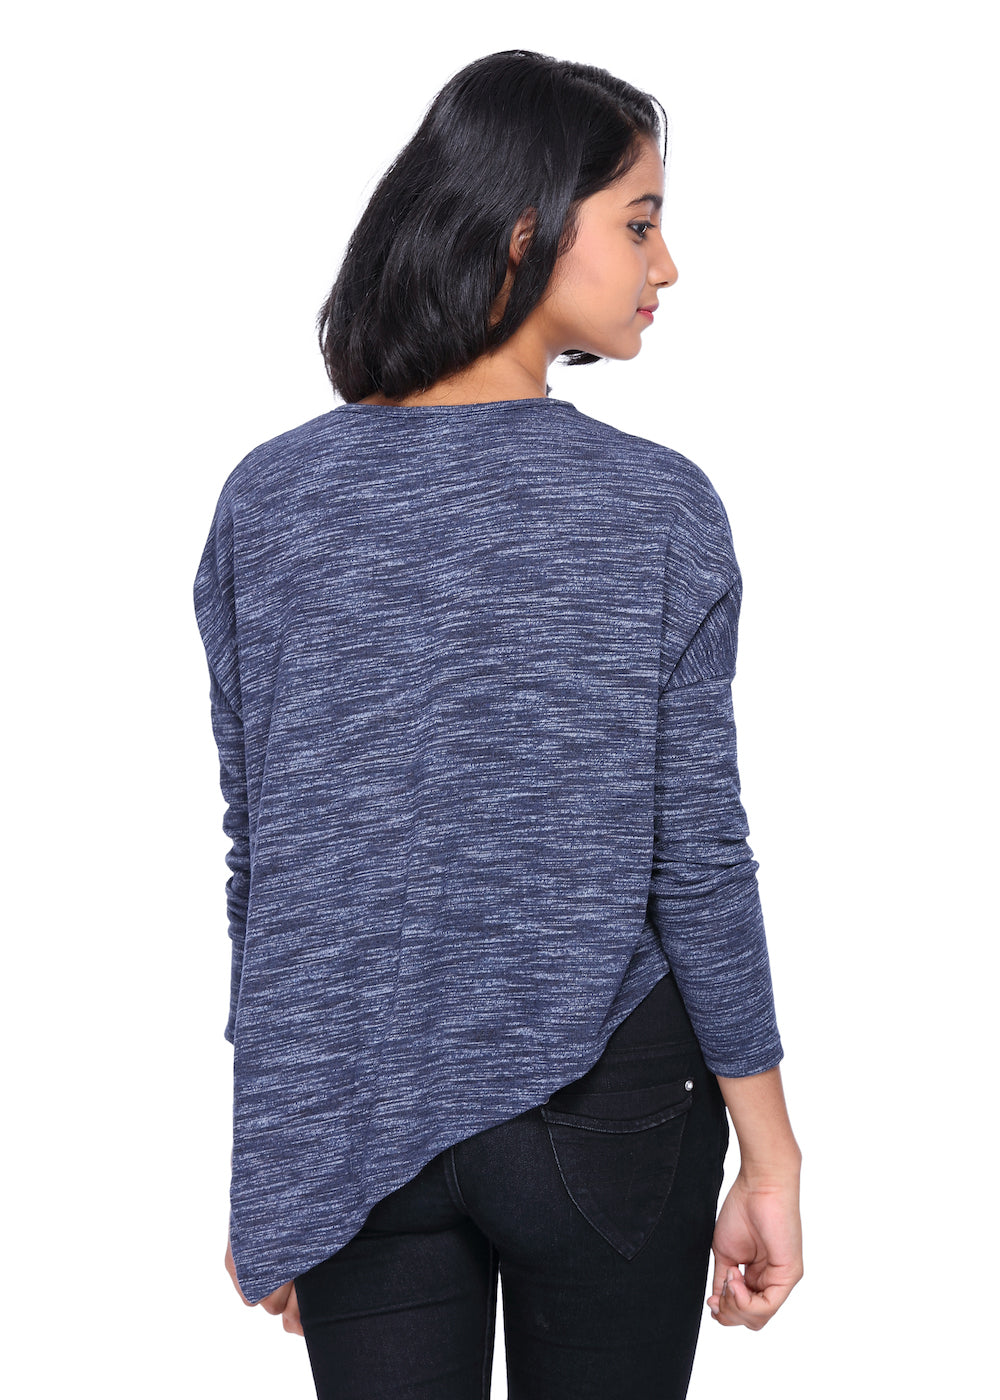 Blue Knit Poncho Top - GENZEE